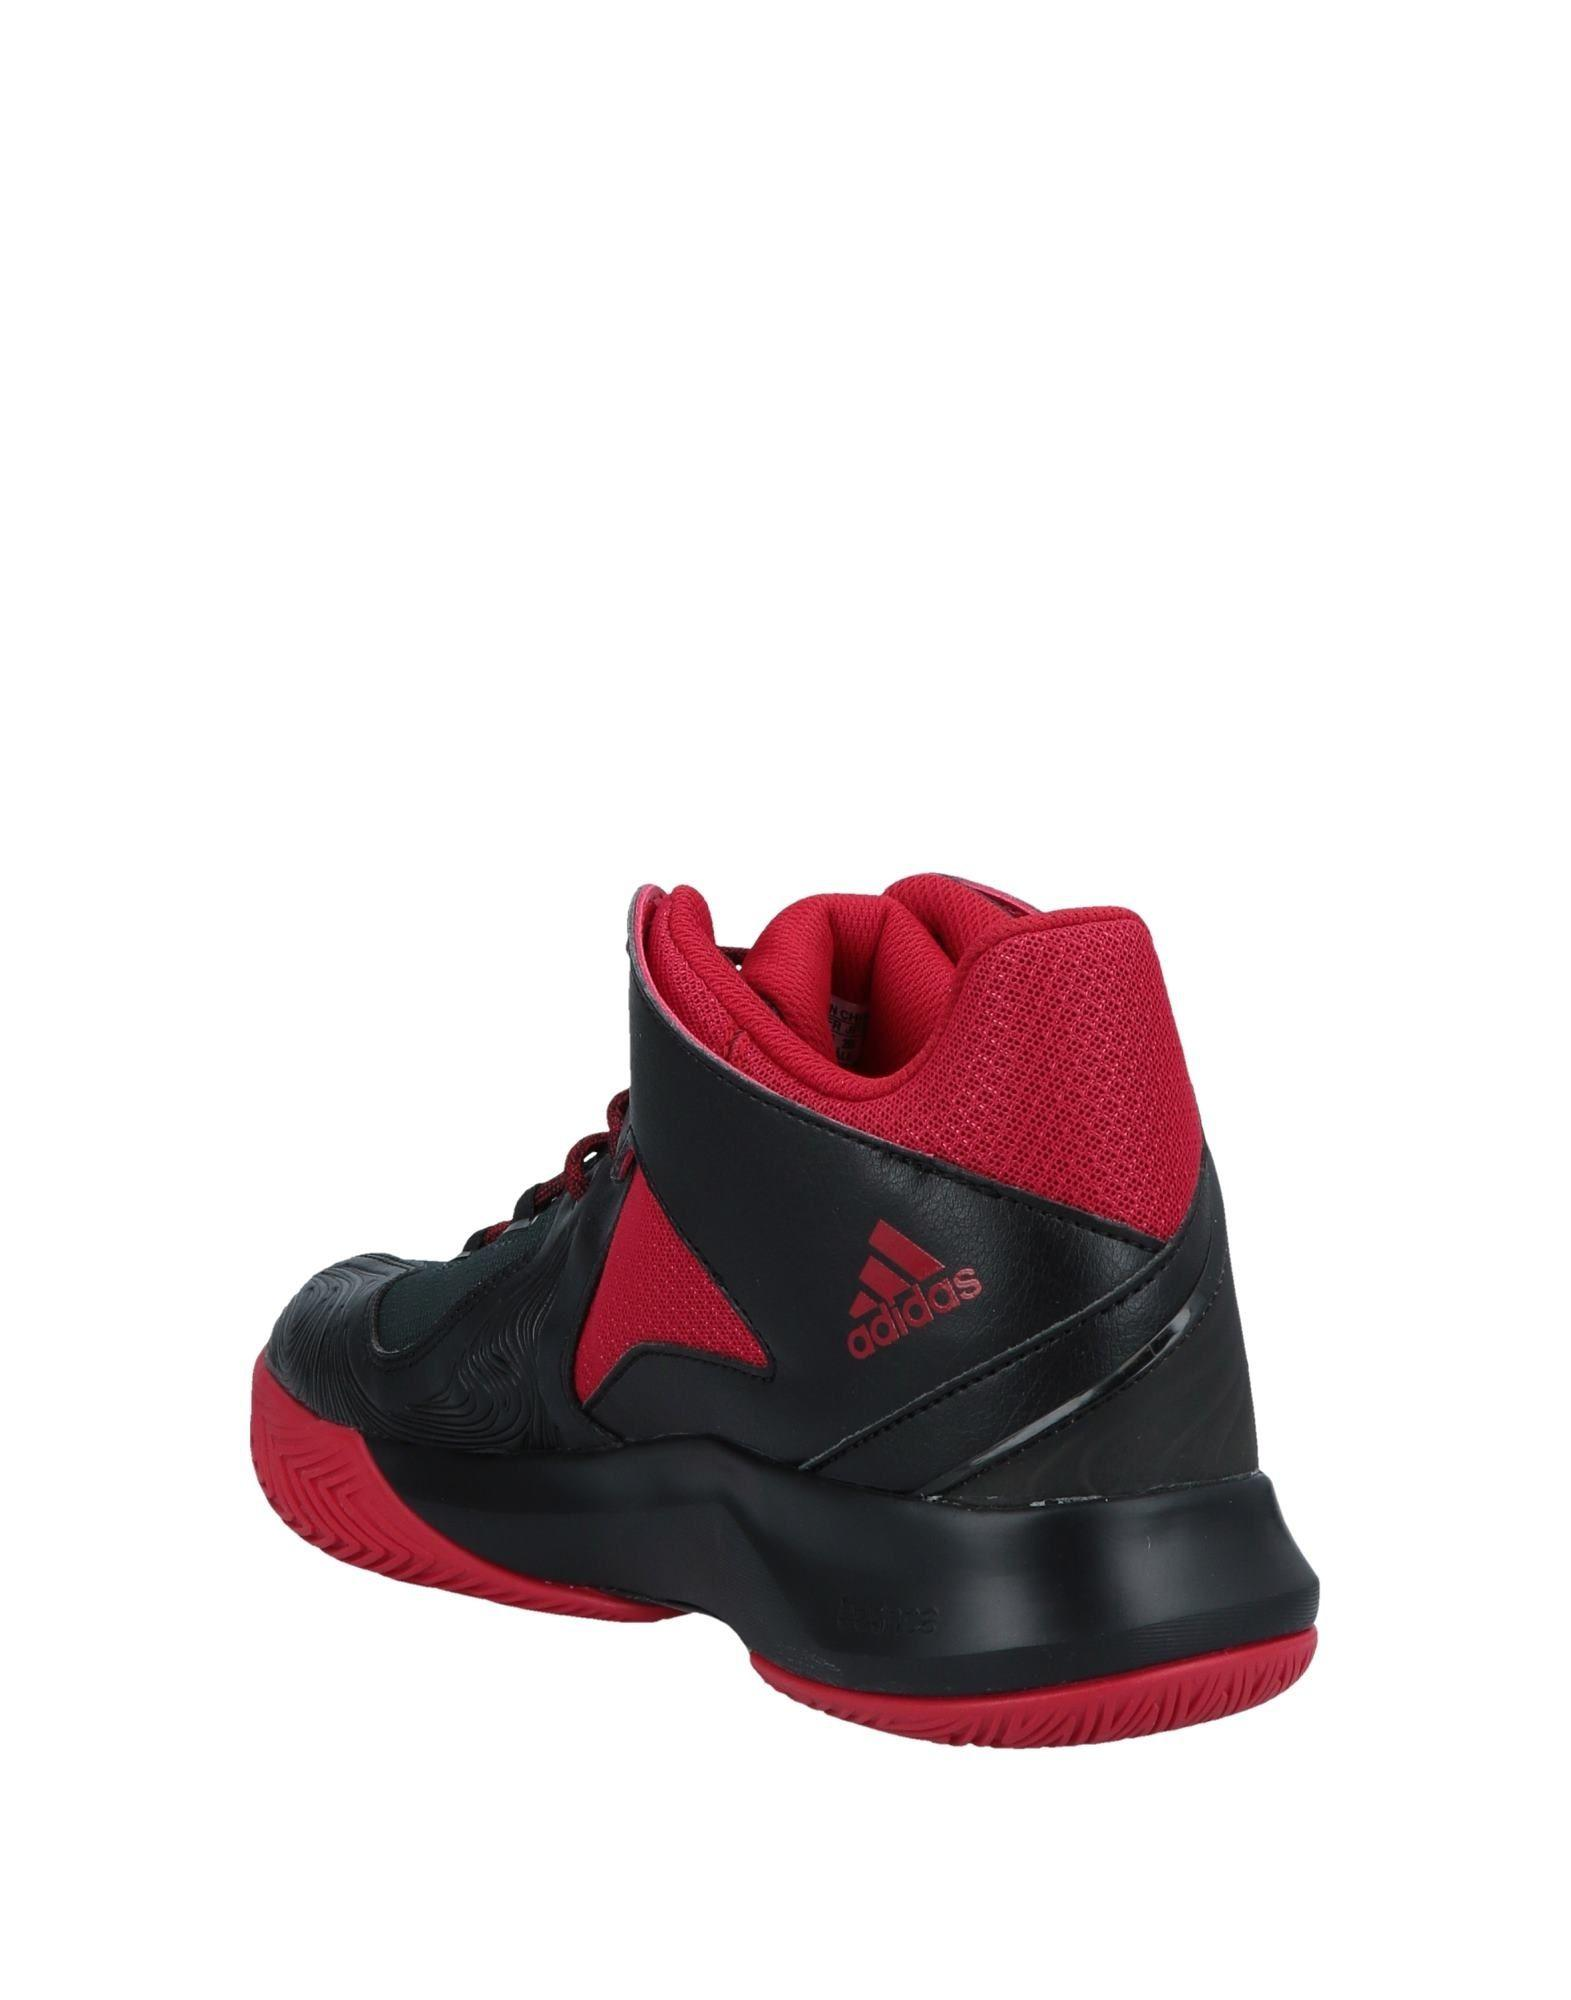 748168170e32 adidas High-tops & Sneakers in Black for Men - Lyst